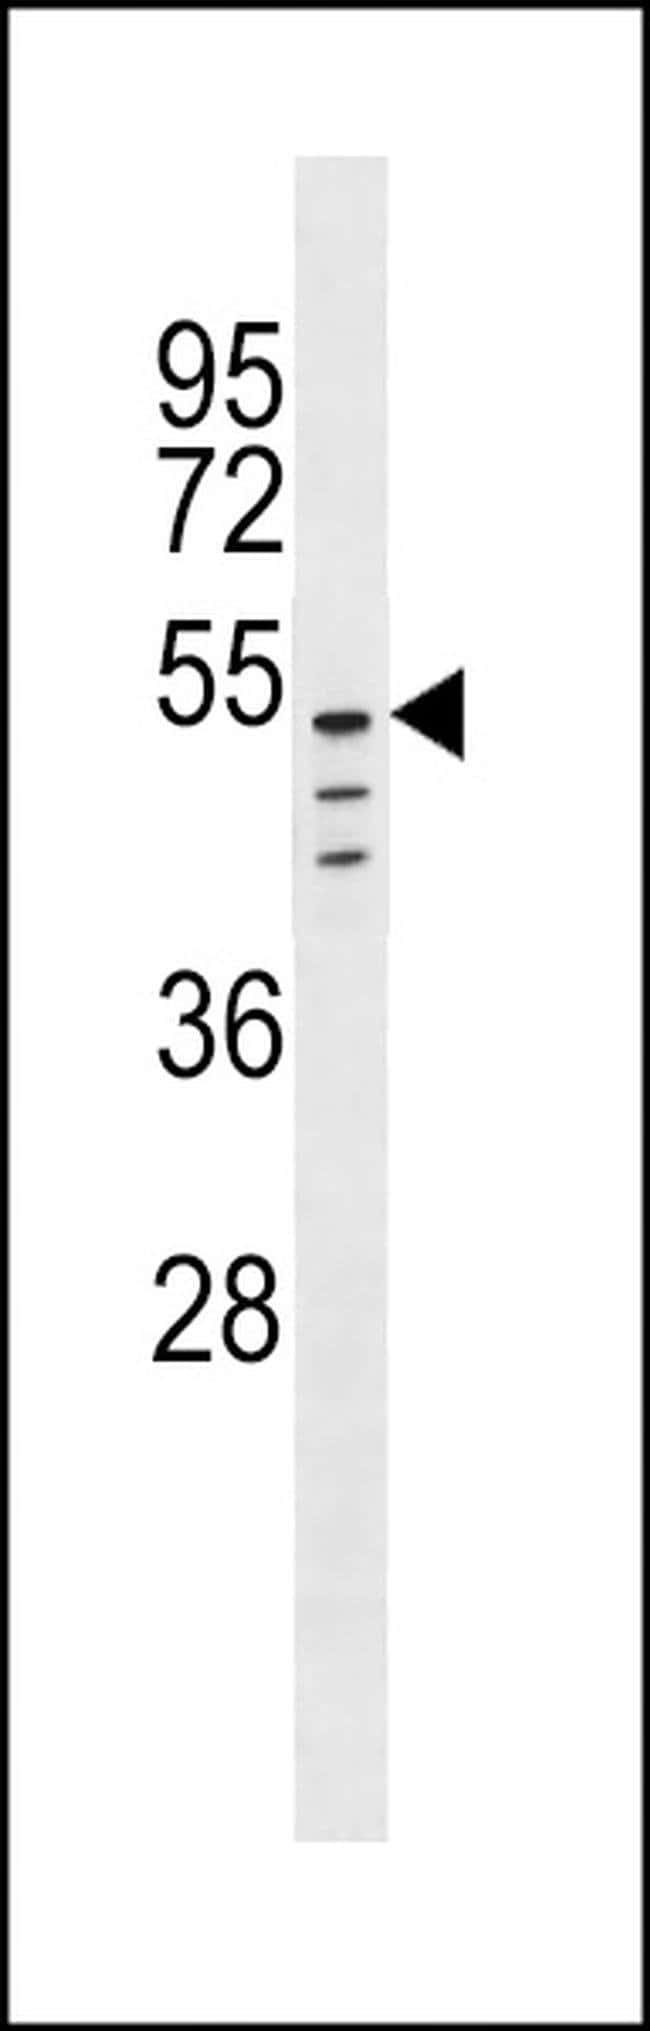 CLEC18C Rabbit anti-Human, Polyclonal, Invitrogen 400 µL; Unconjugated